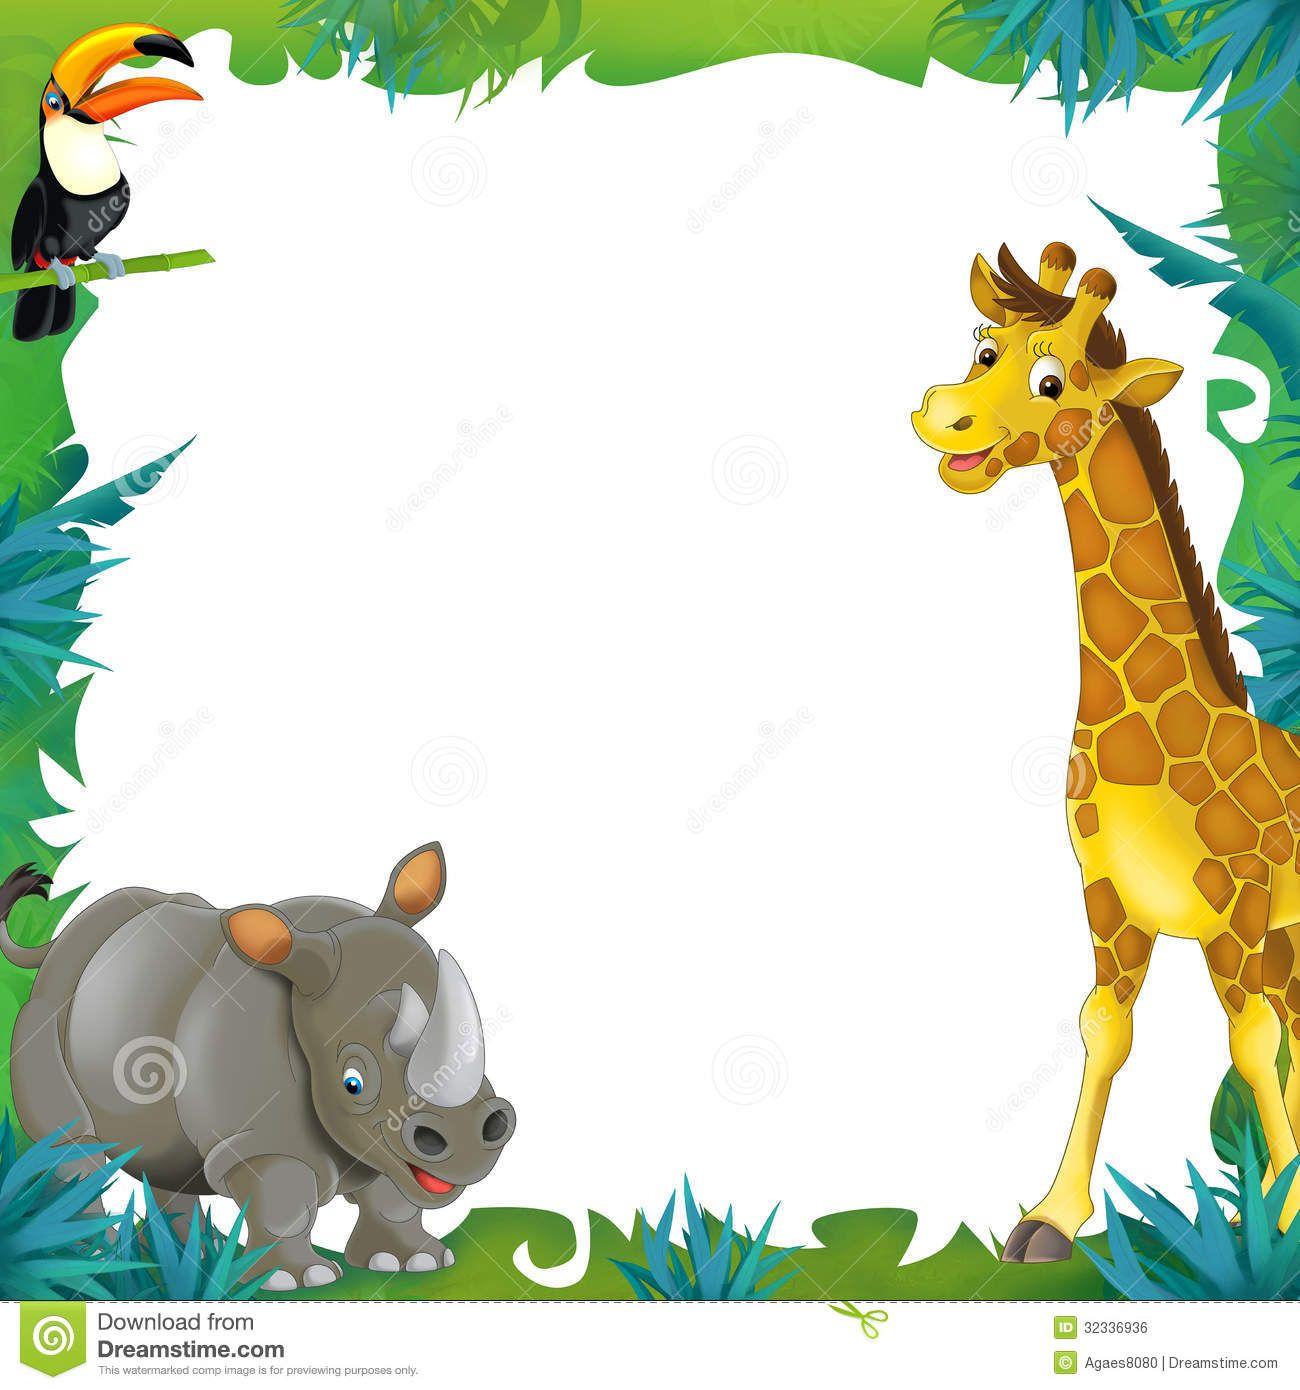 medium resolution of cartoon safari jungle frame border template illustration for the children download from over 29 million high quality stock photos images vectors